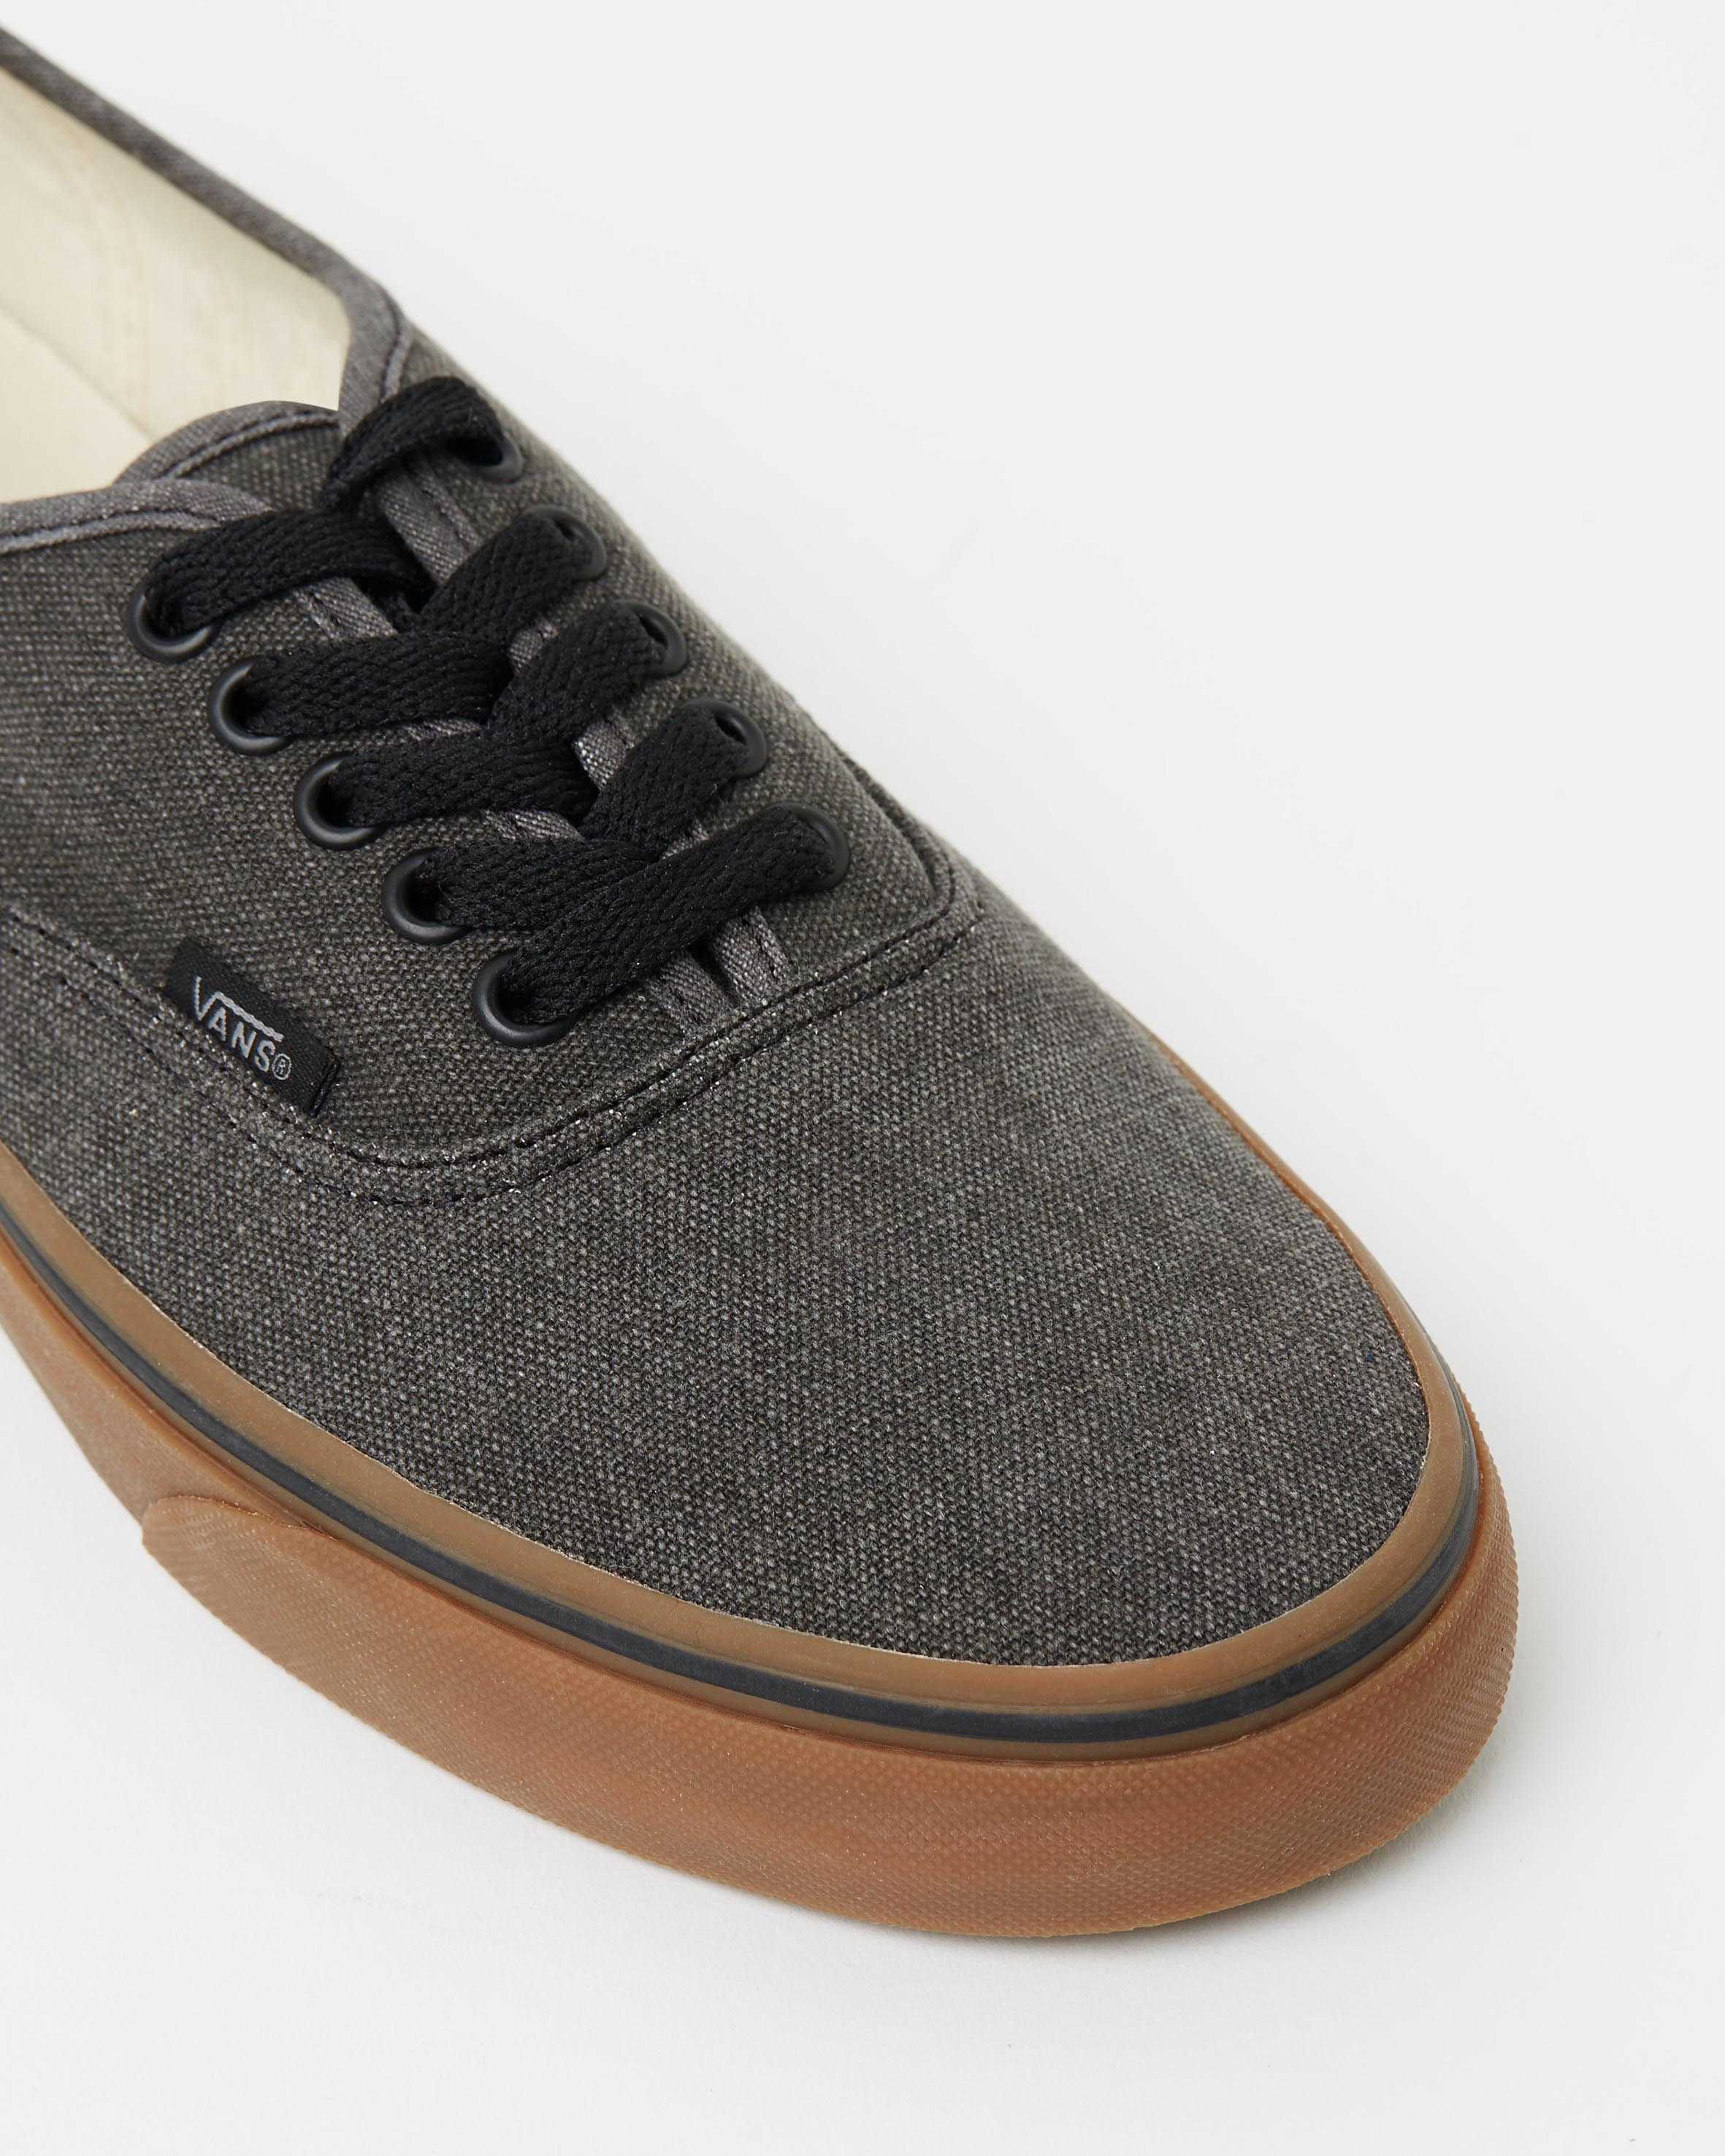 Vans Authentic Washed Canvas Black & Gum Mens Sneakers